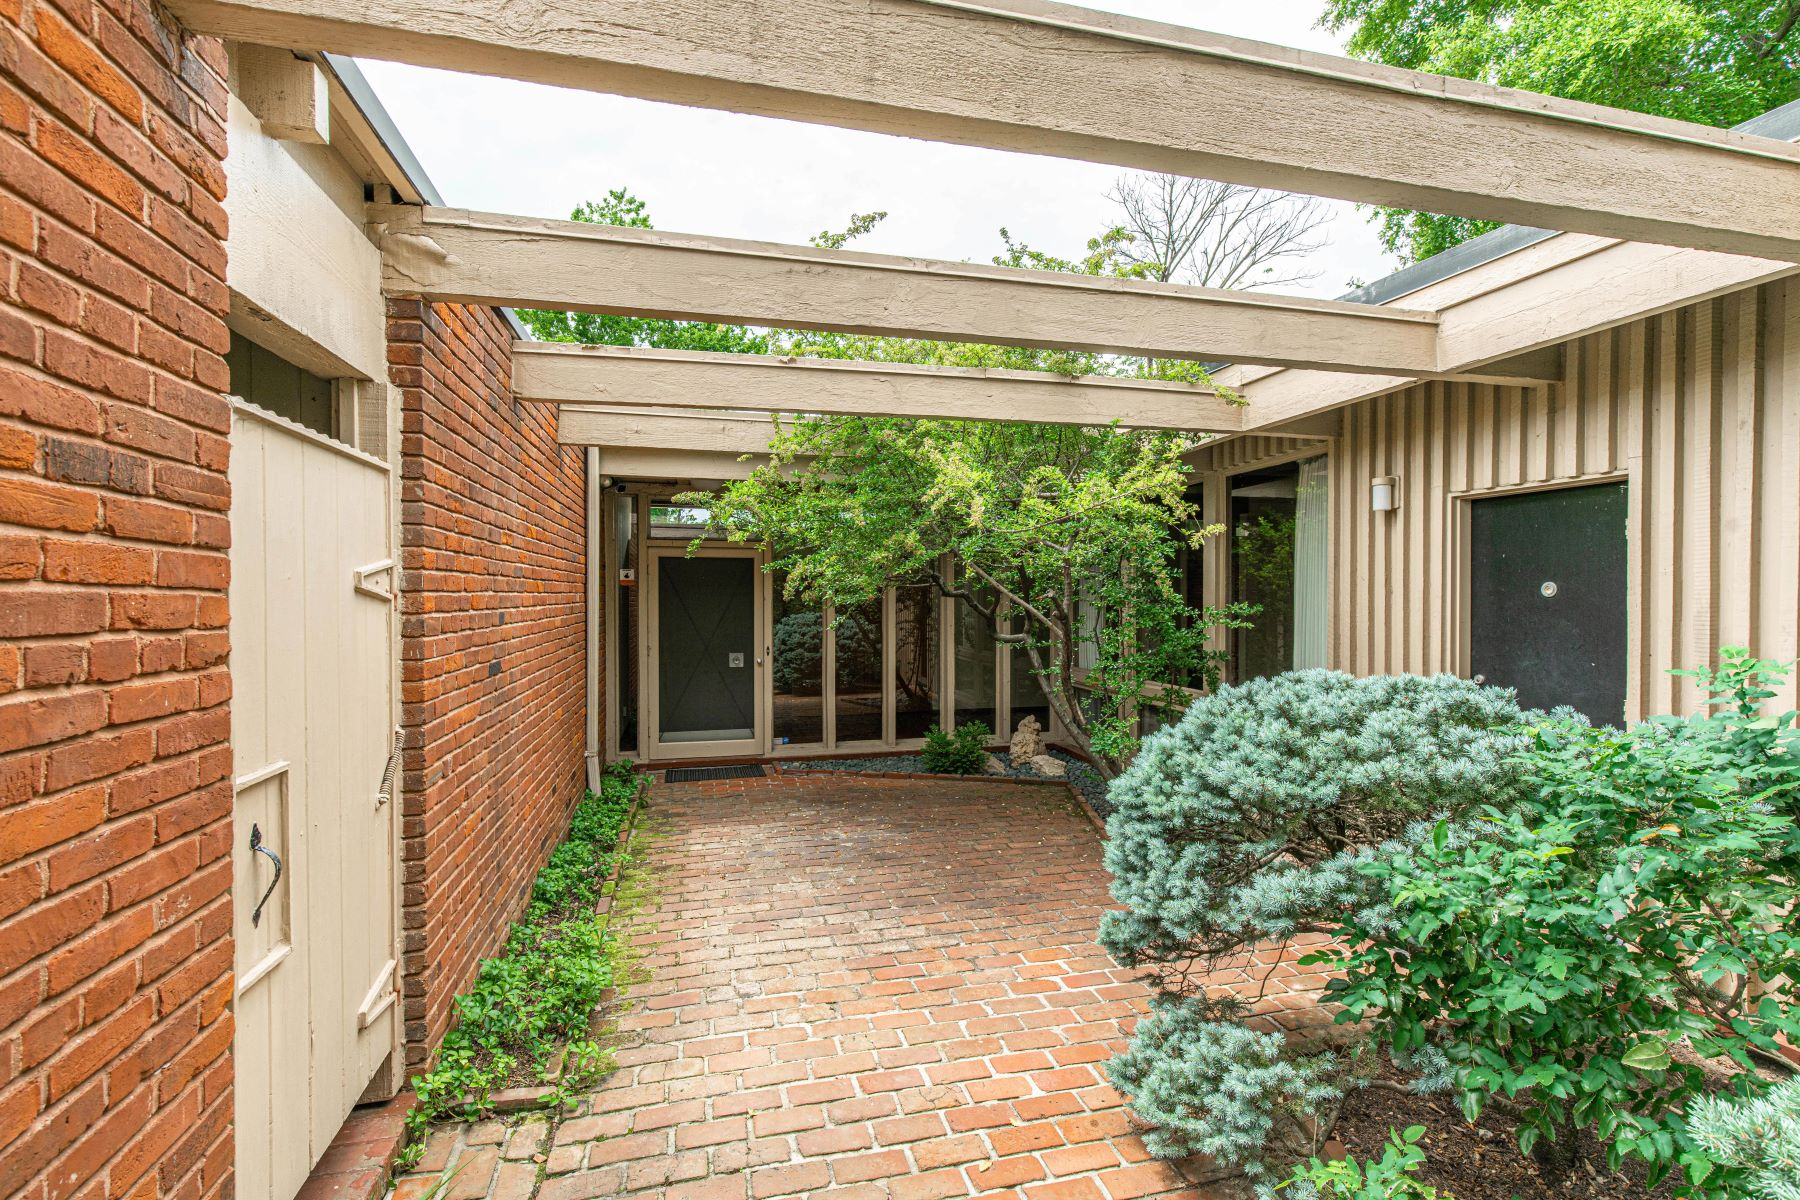 Additional photo for property listing at Important Mid-Century Home Designed by Isadore Shank 10 Westwood Country Club St. Louis, Missouri 63131 United States